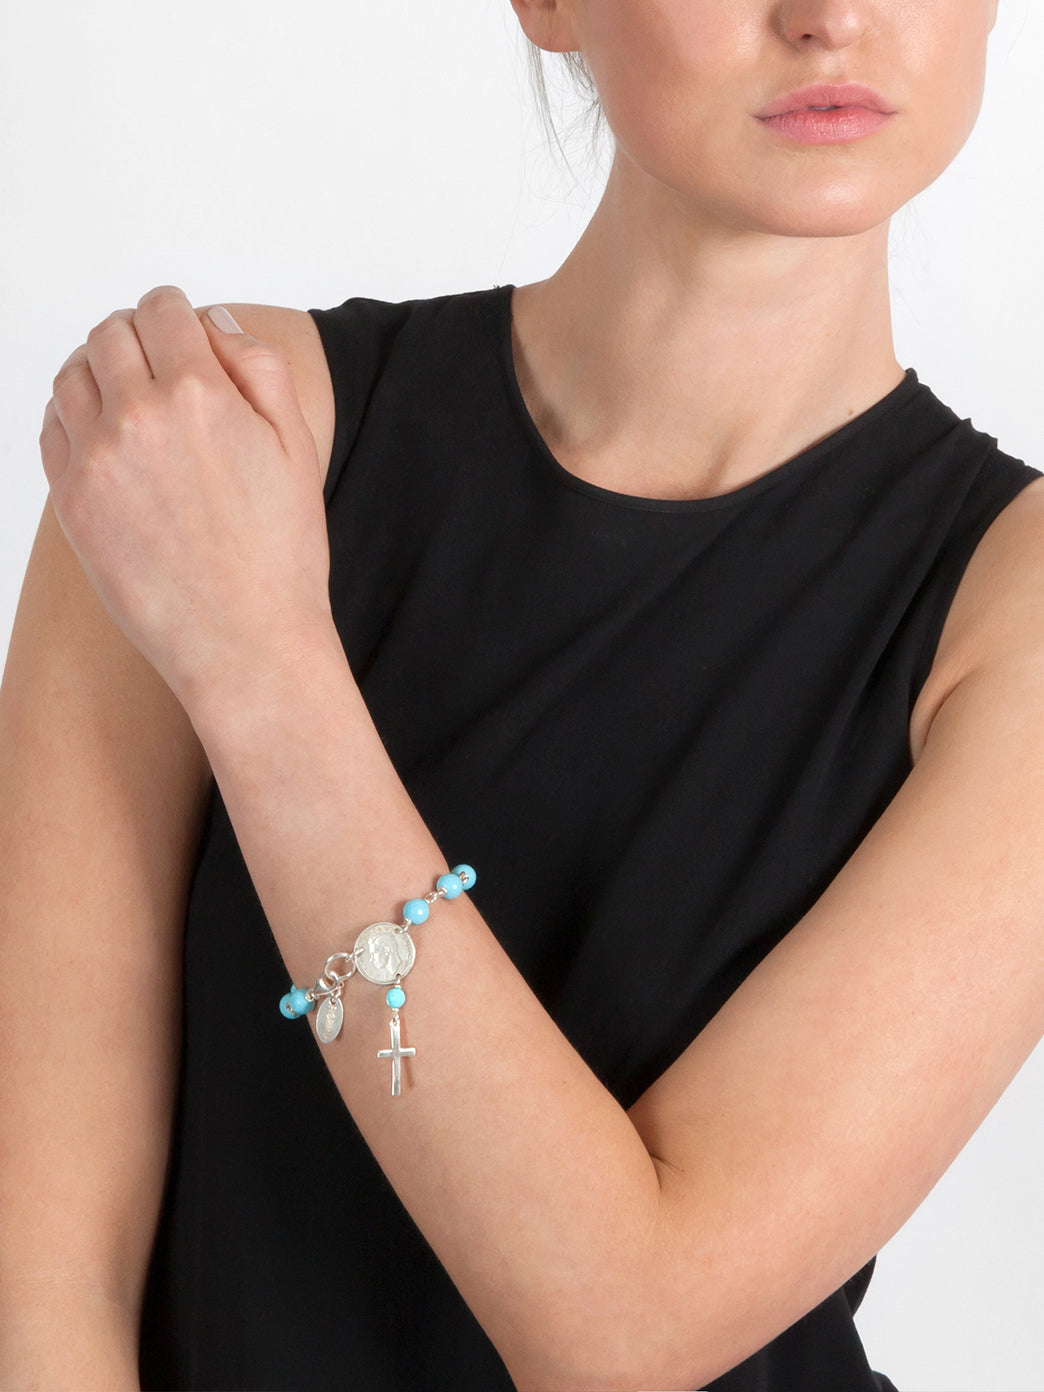 Fiorina Jewellery Rosary Bracelet 8mm Turquoise Model